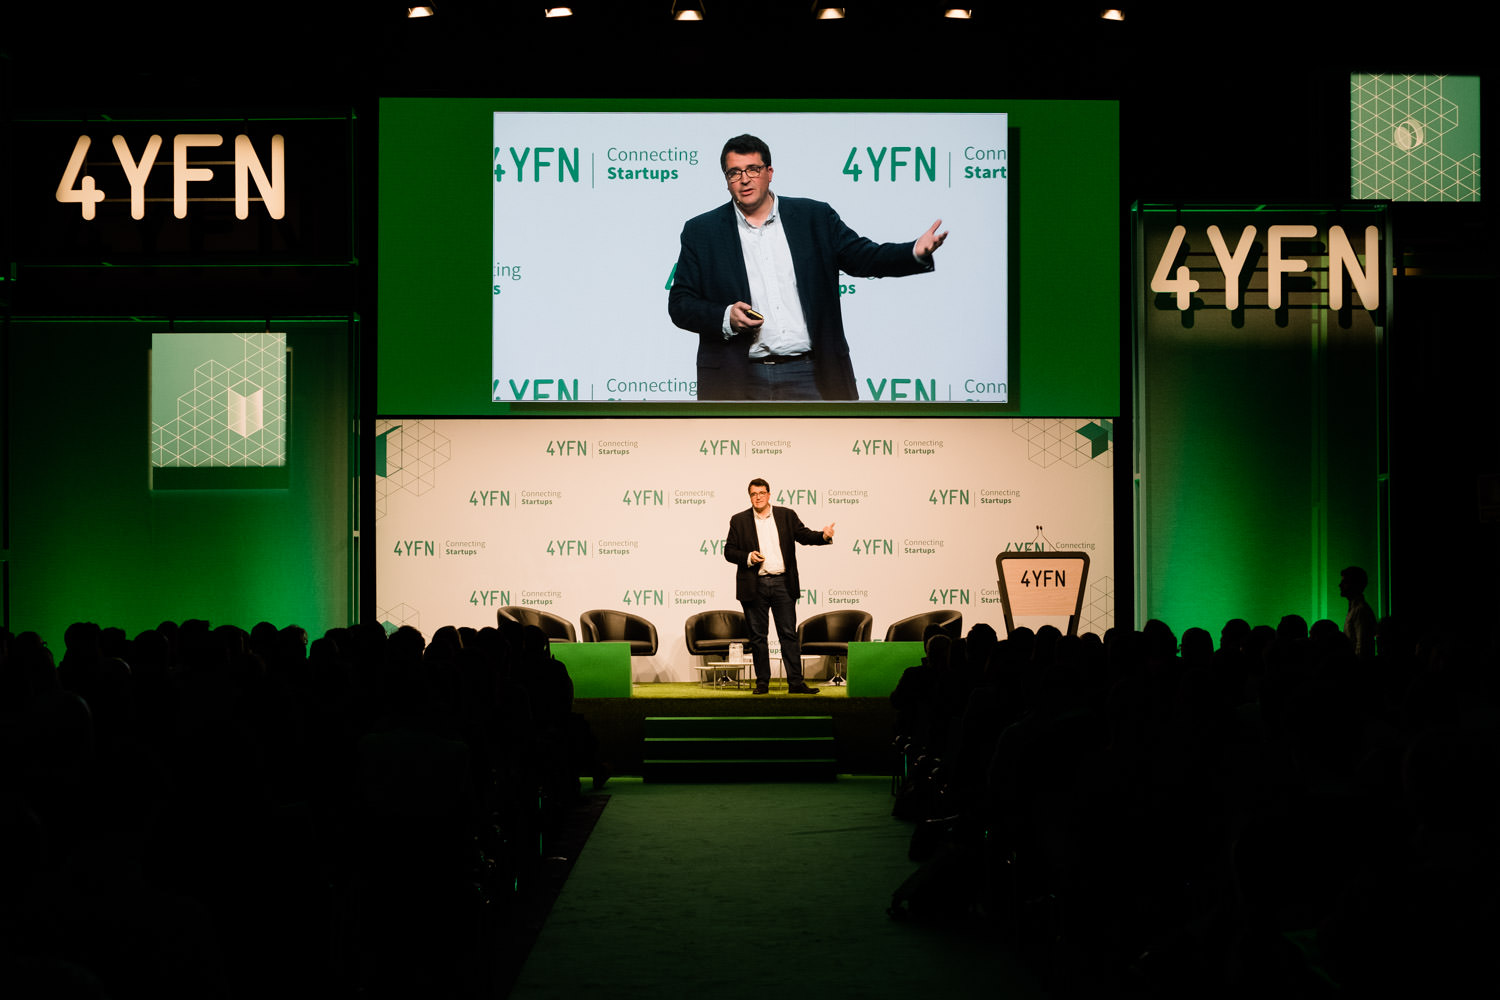 A photograph of a man speaking on stage during the 4YFN event in Barcelona, Spain